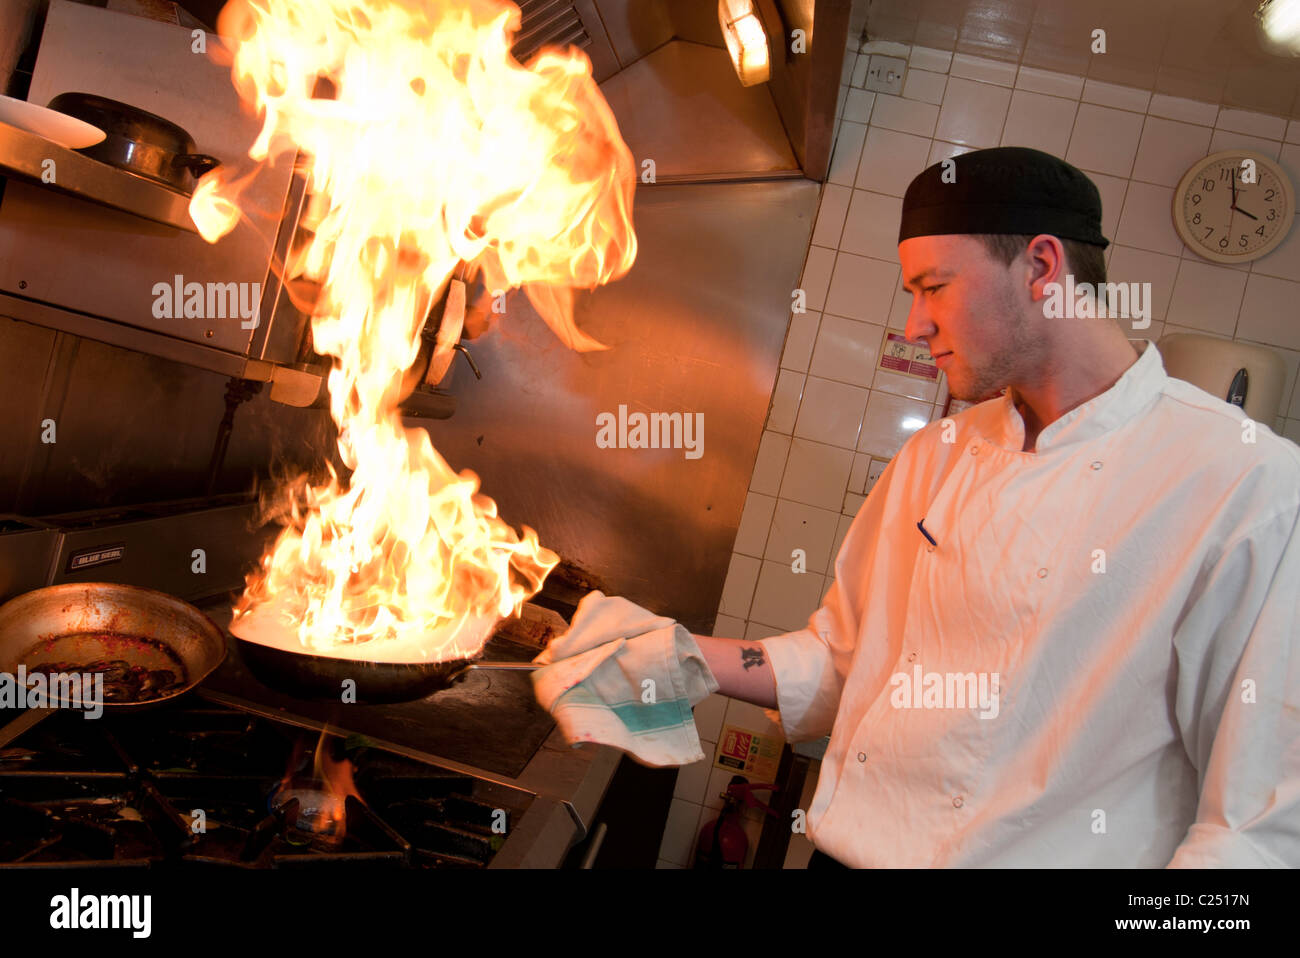 Chef cooking in a kitchen with flames coming out of the frying pan restaurant